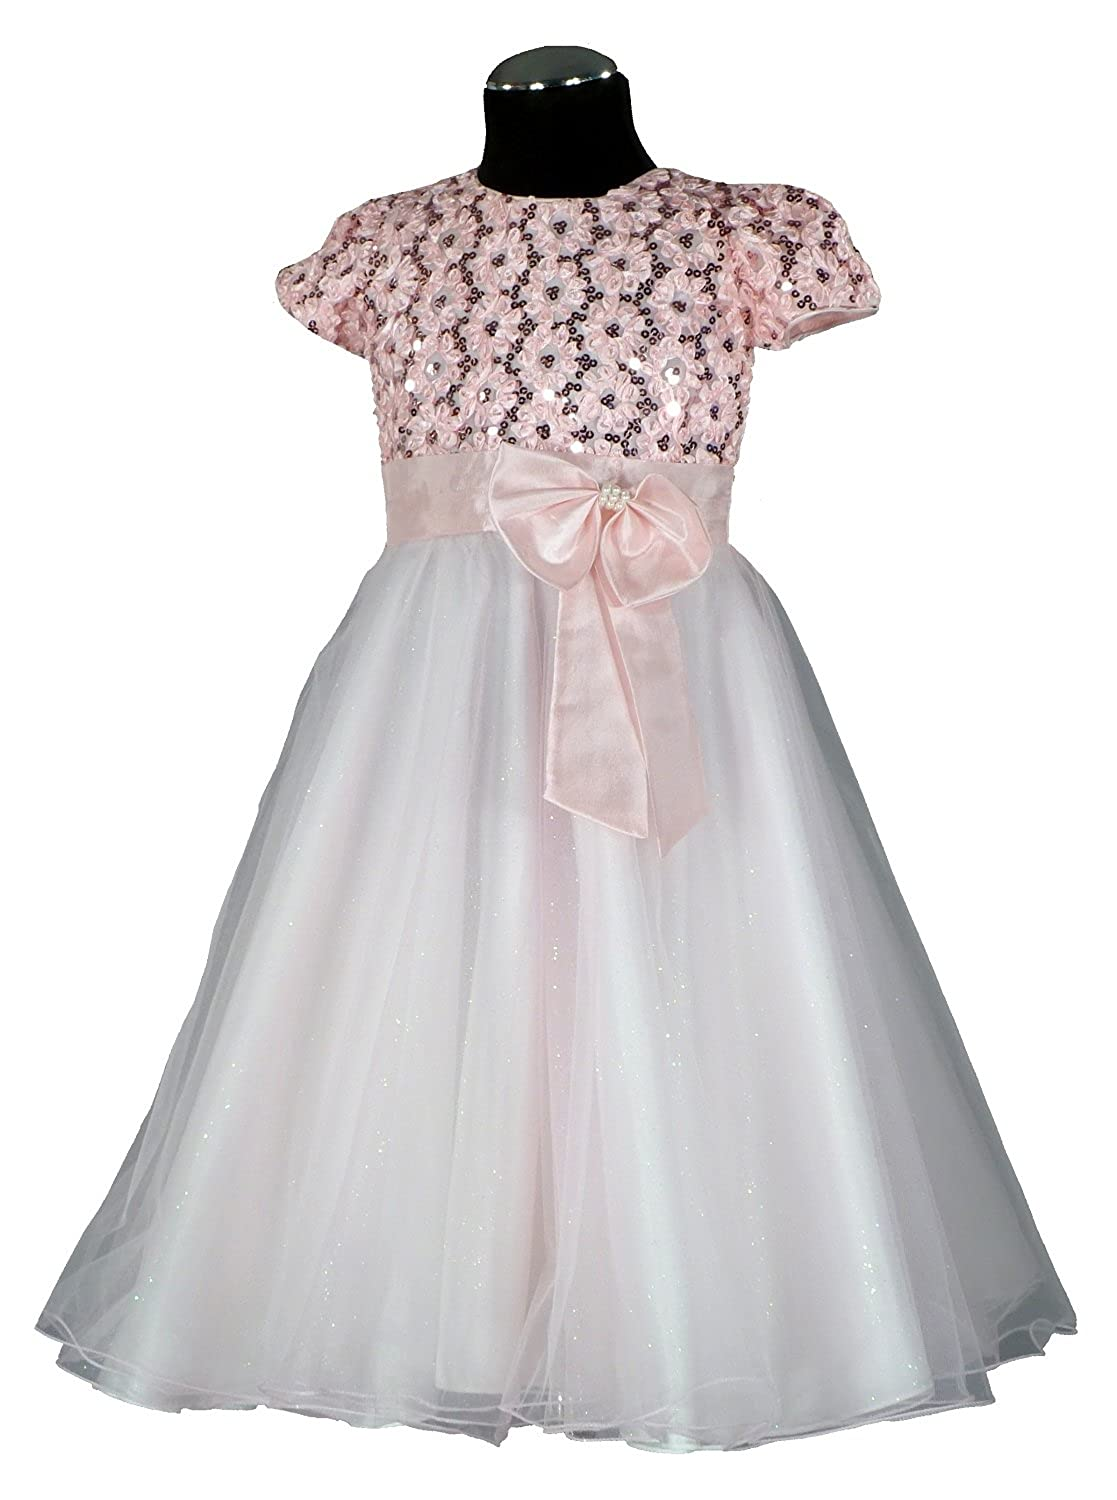 Velvet Rose Size 104?-?Live?-?Girls Dress Pink Flower Girl Dress Satin/Chiffon Calf Length PC533?158?(4-12)